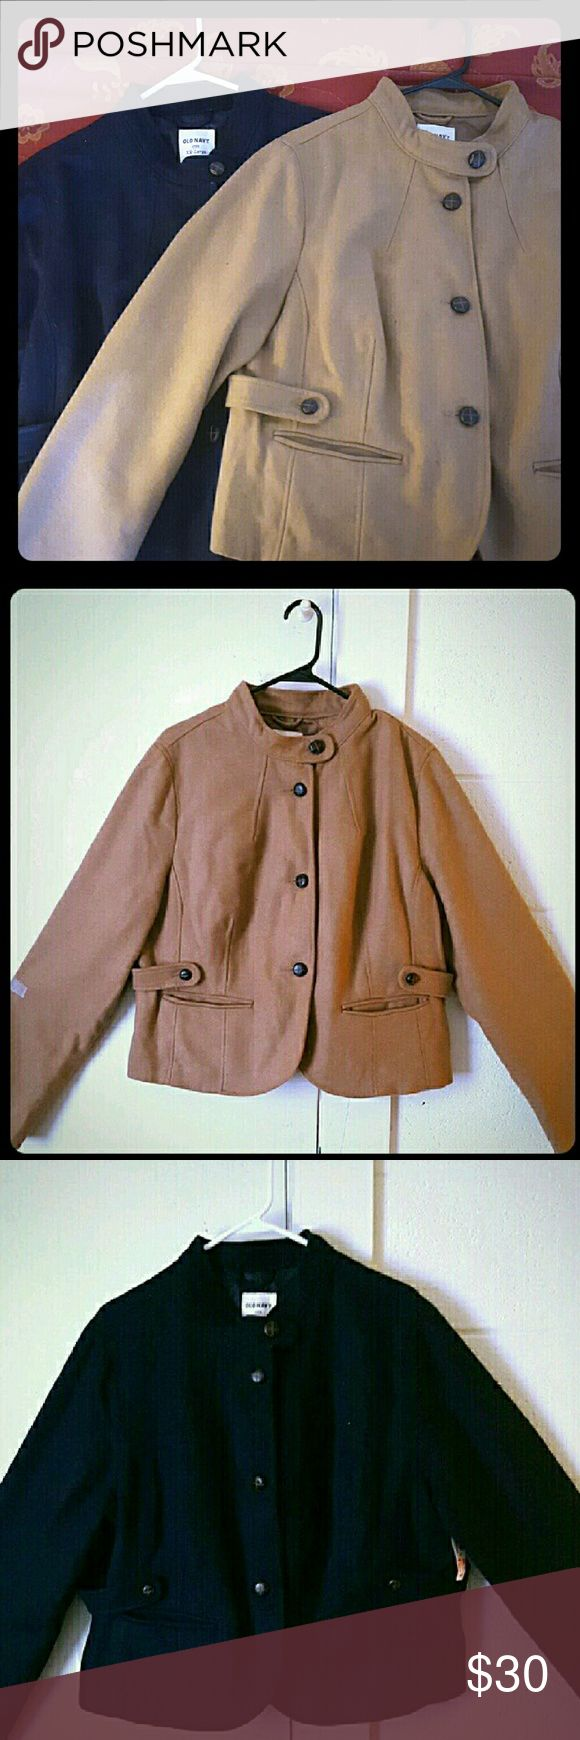 2 Old Navy Coats Great Condition Old Navy Coats for A Great Price!!!! Old Navy Jackets & Coats